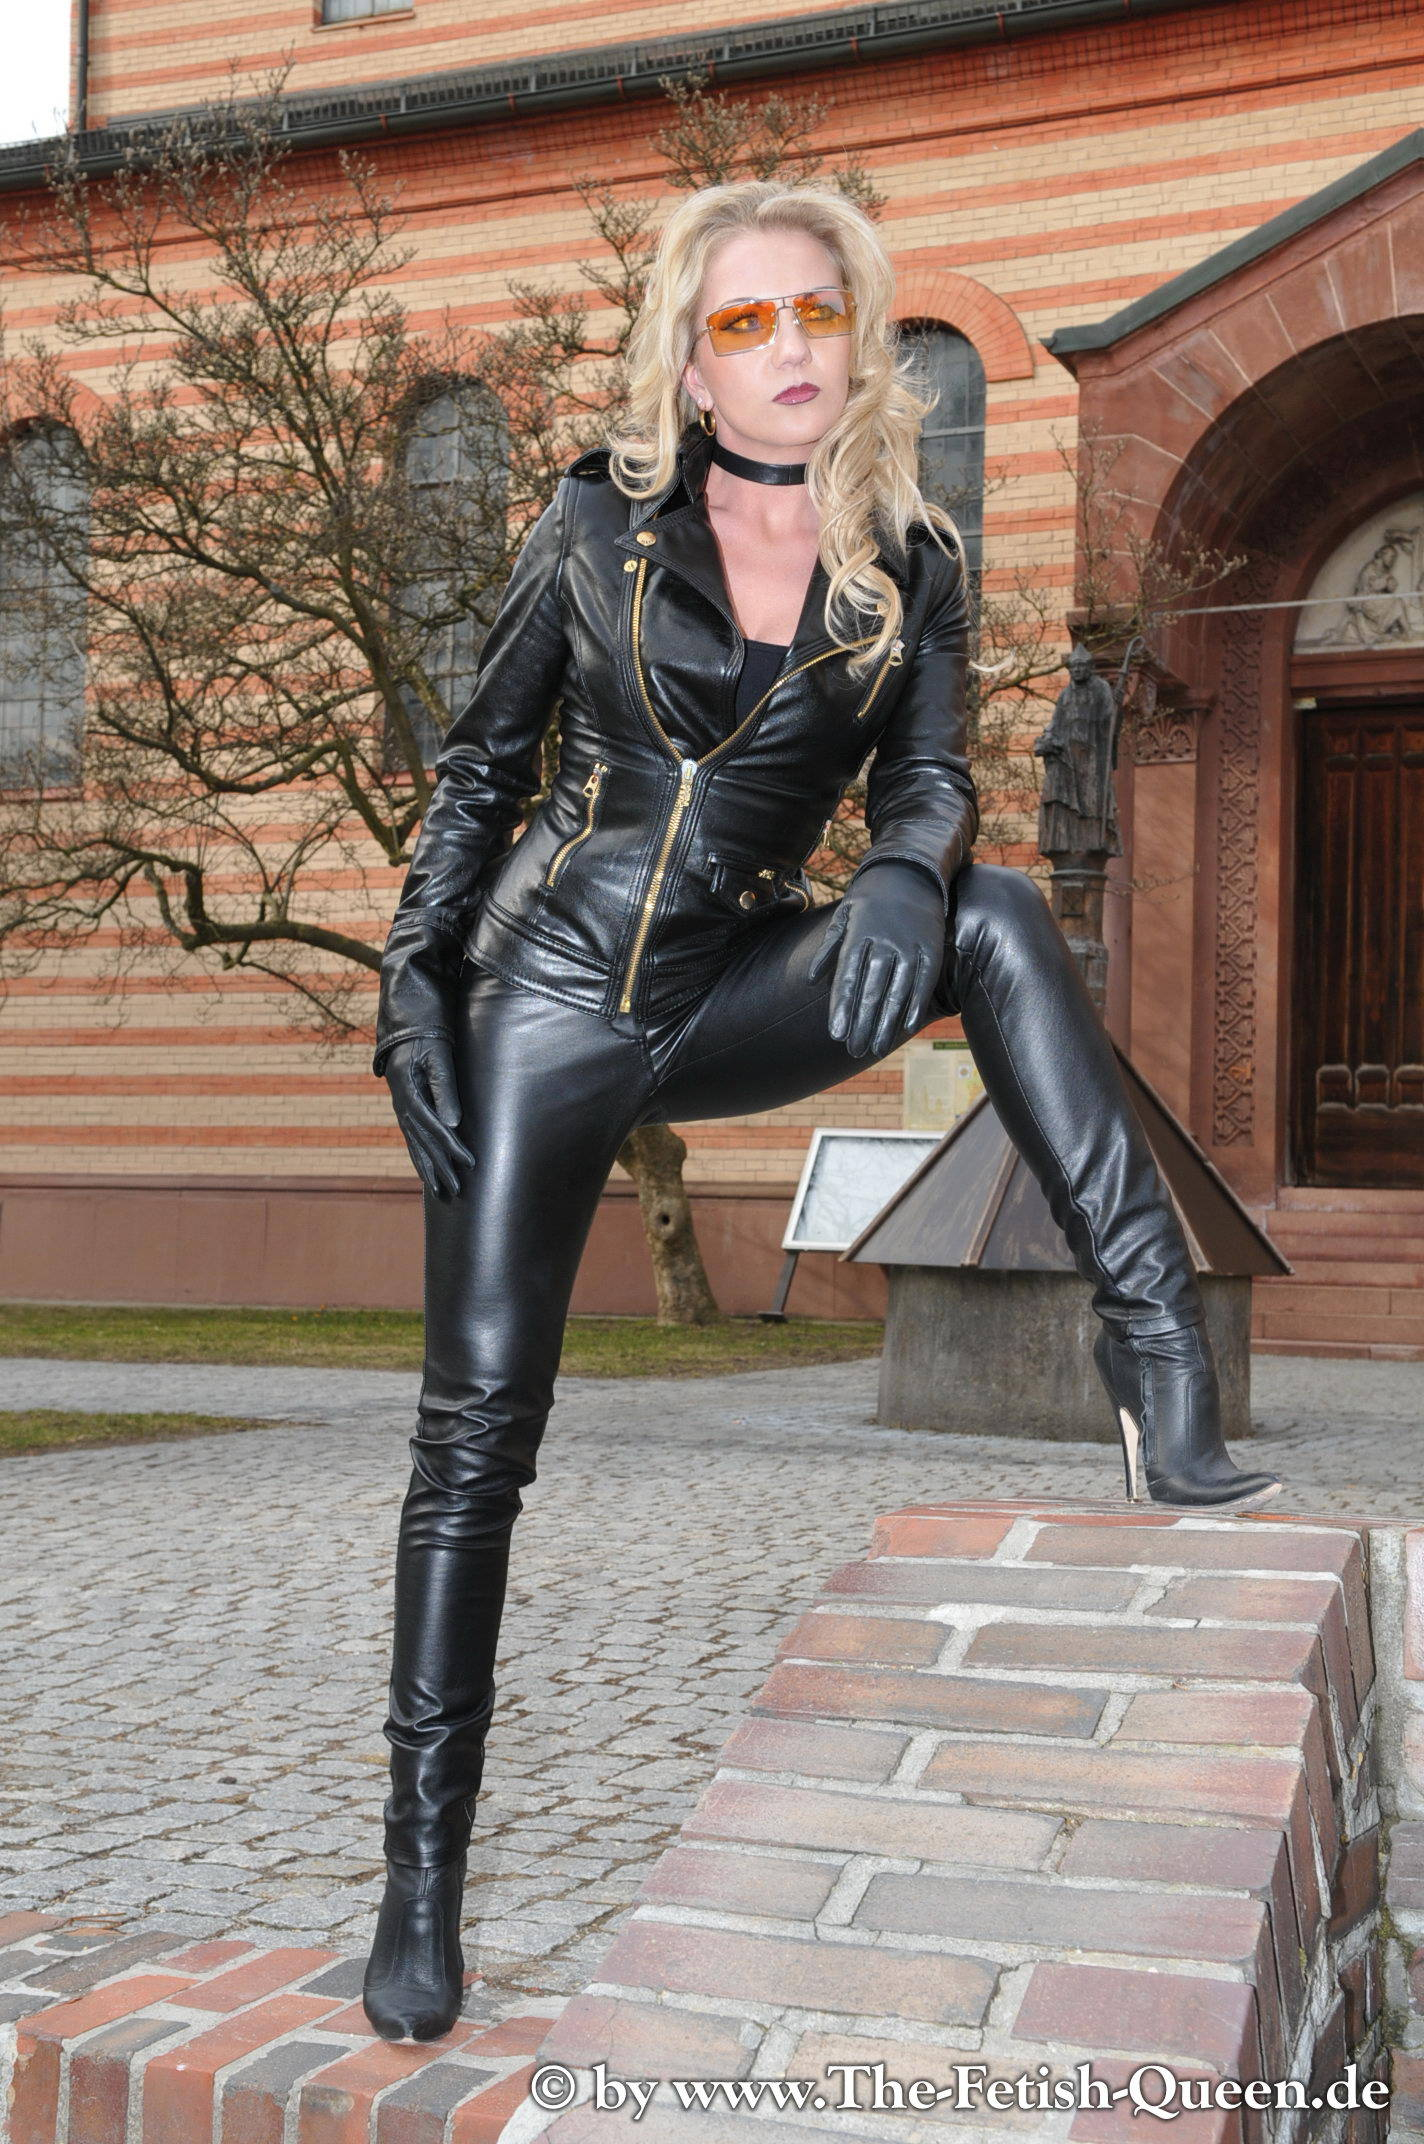 This girl fetish queen heike really alluring!